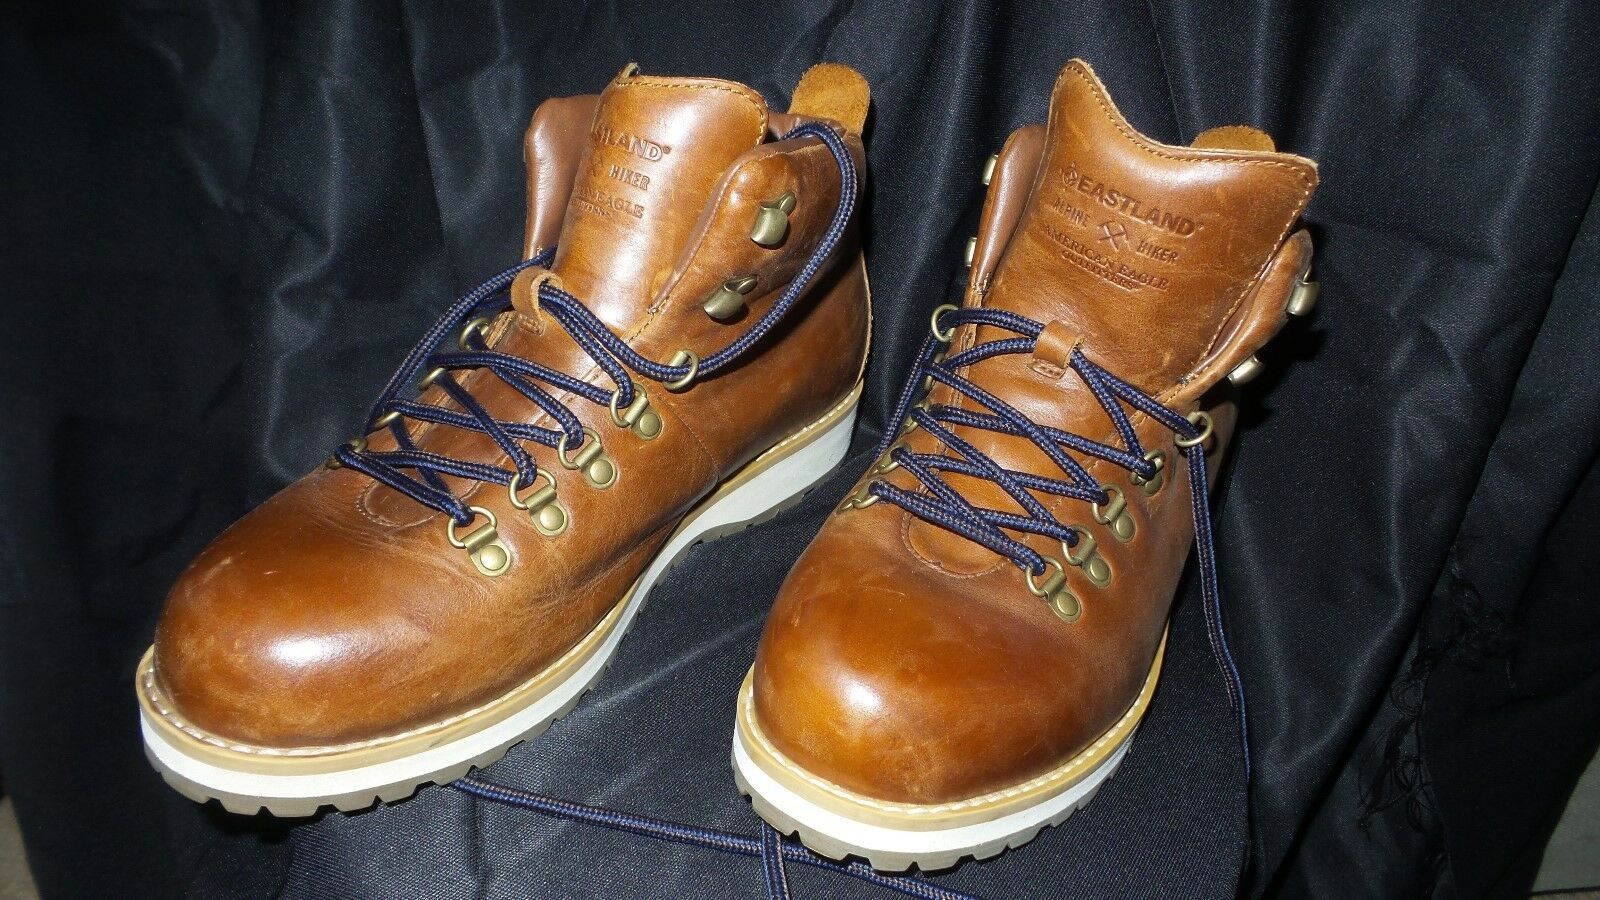 Eastland x American Eagle Outfitters US 9D Leather Alpine 1955 Hiker Boots